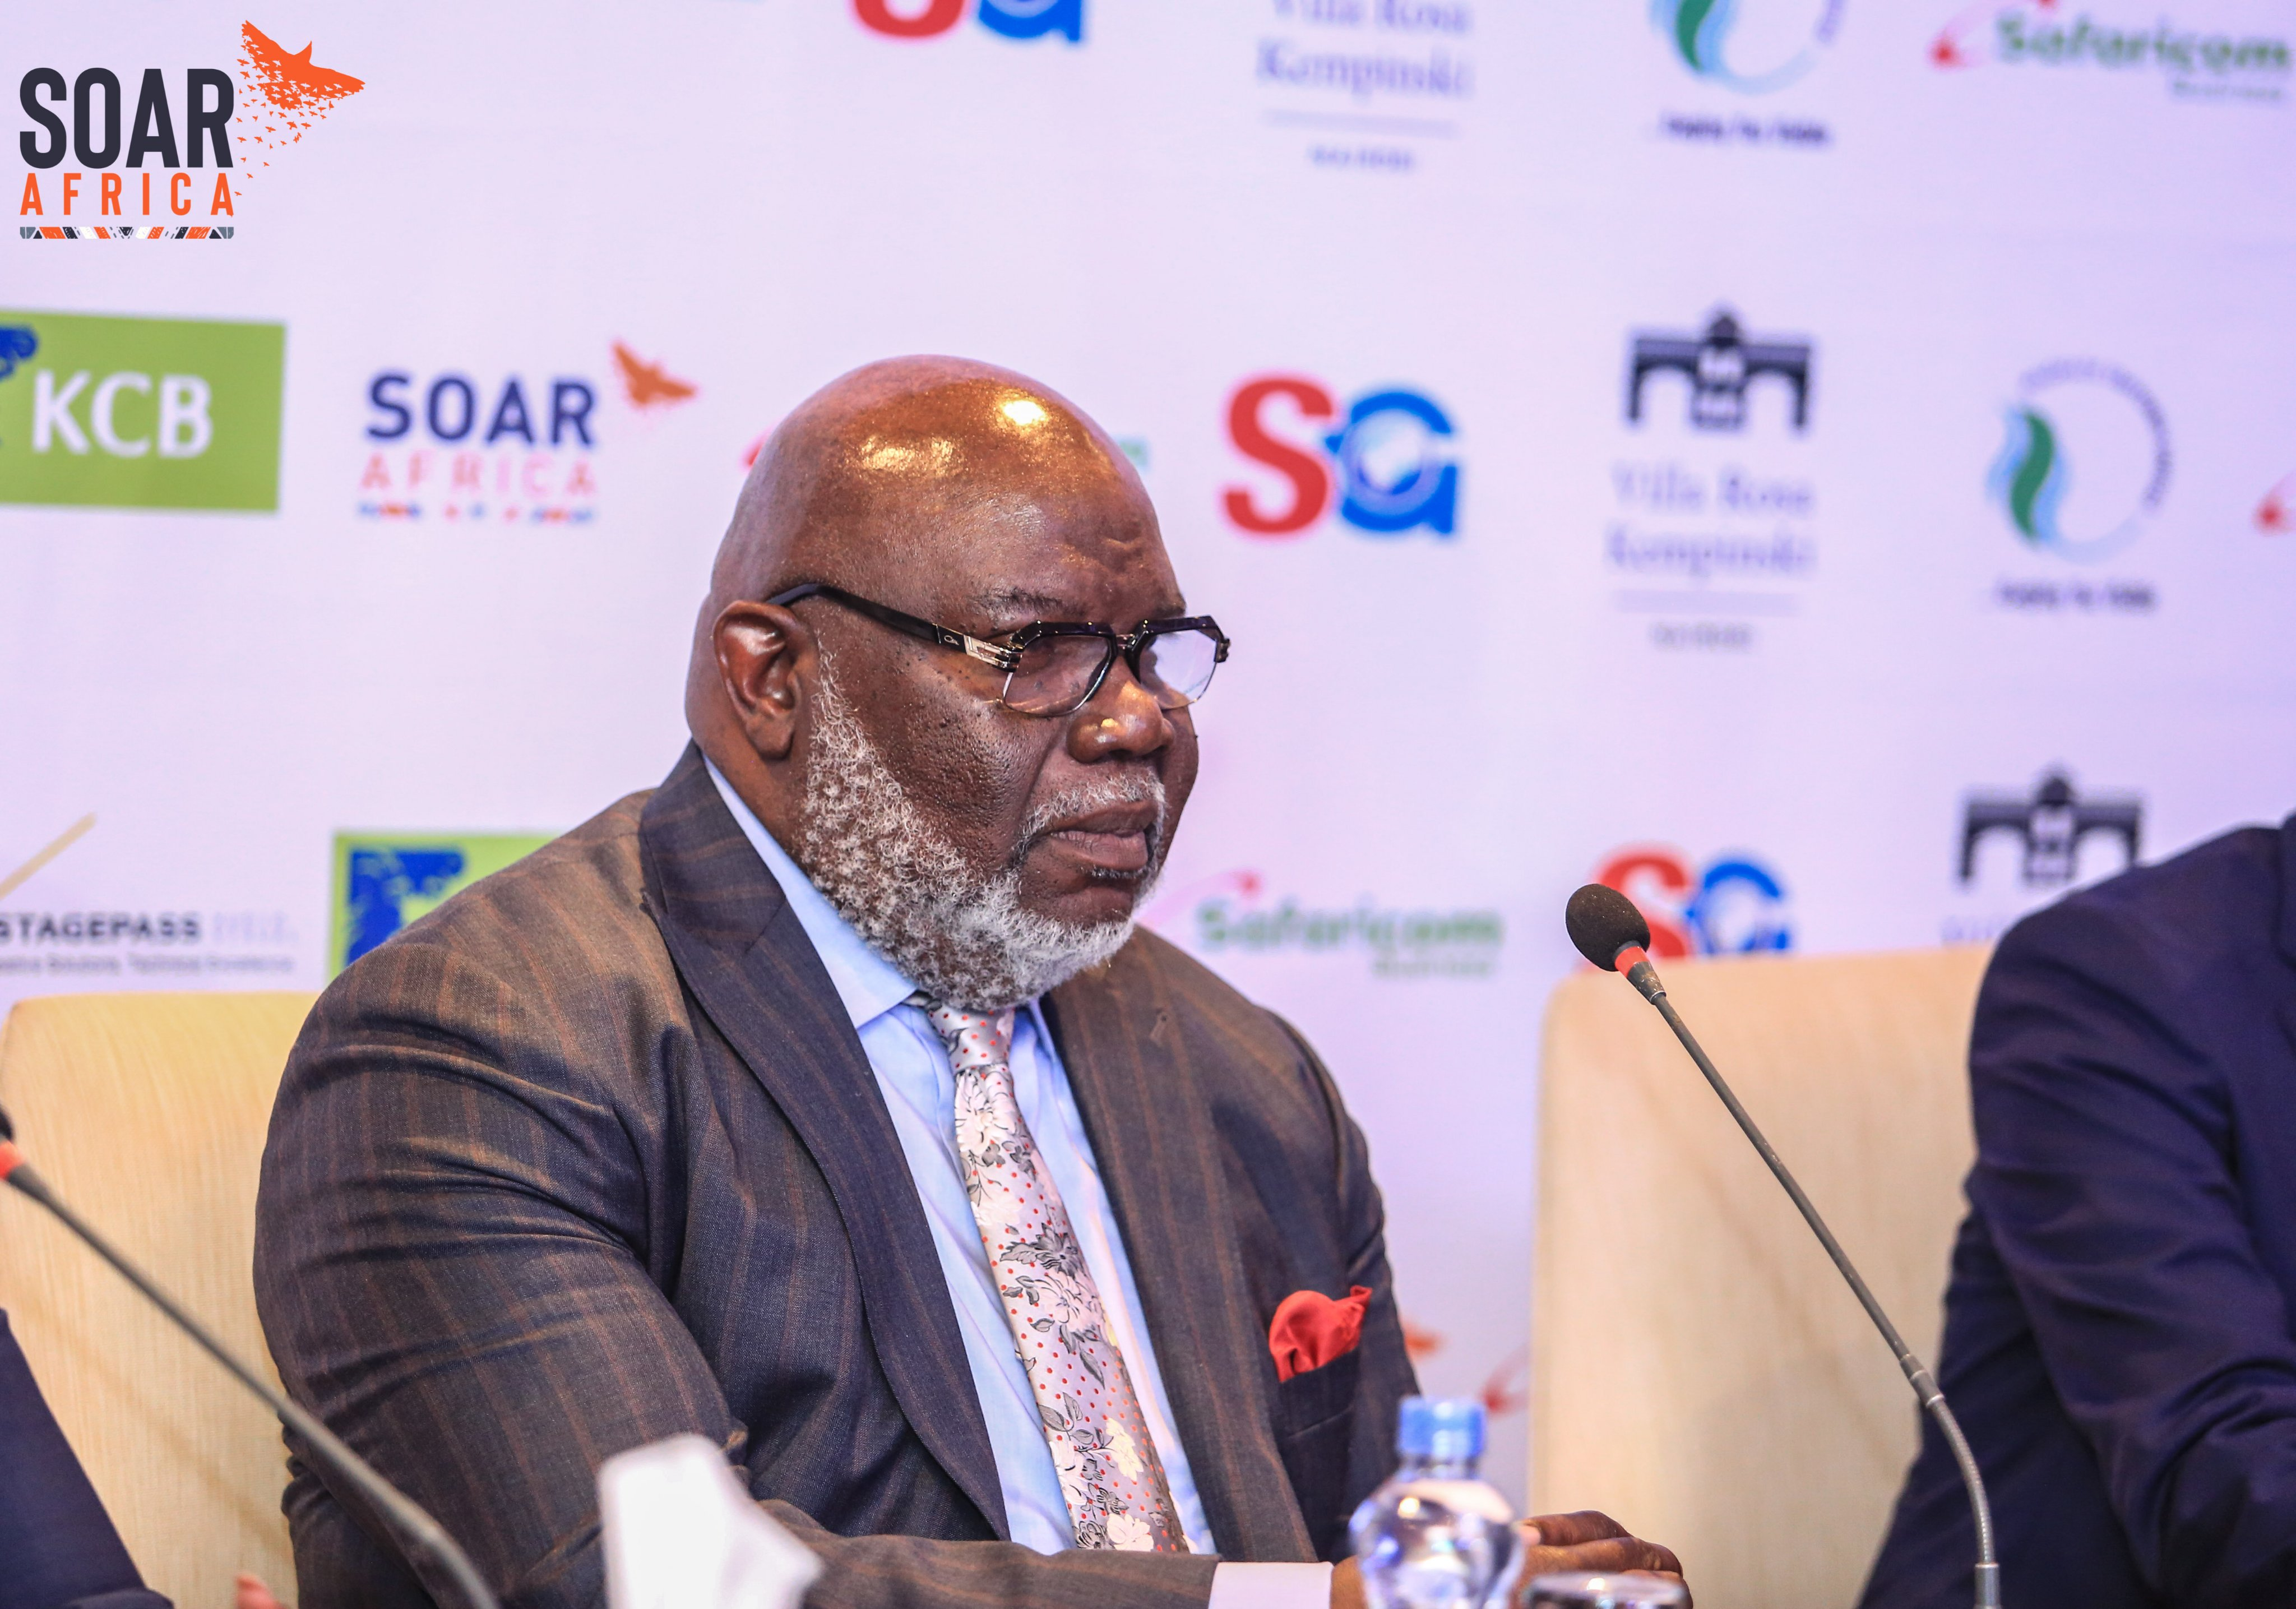 T D  Jakes Hype Eclipses Fellow Speakers at Leadership